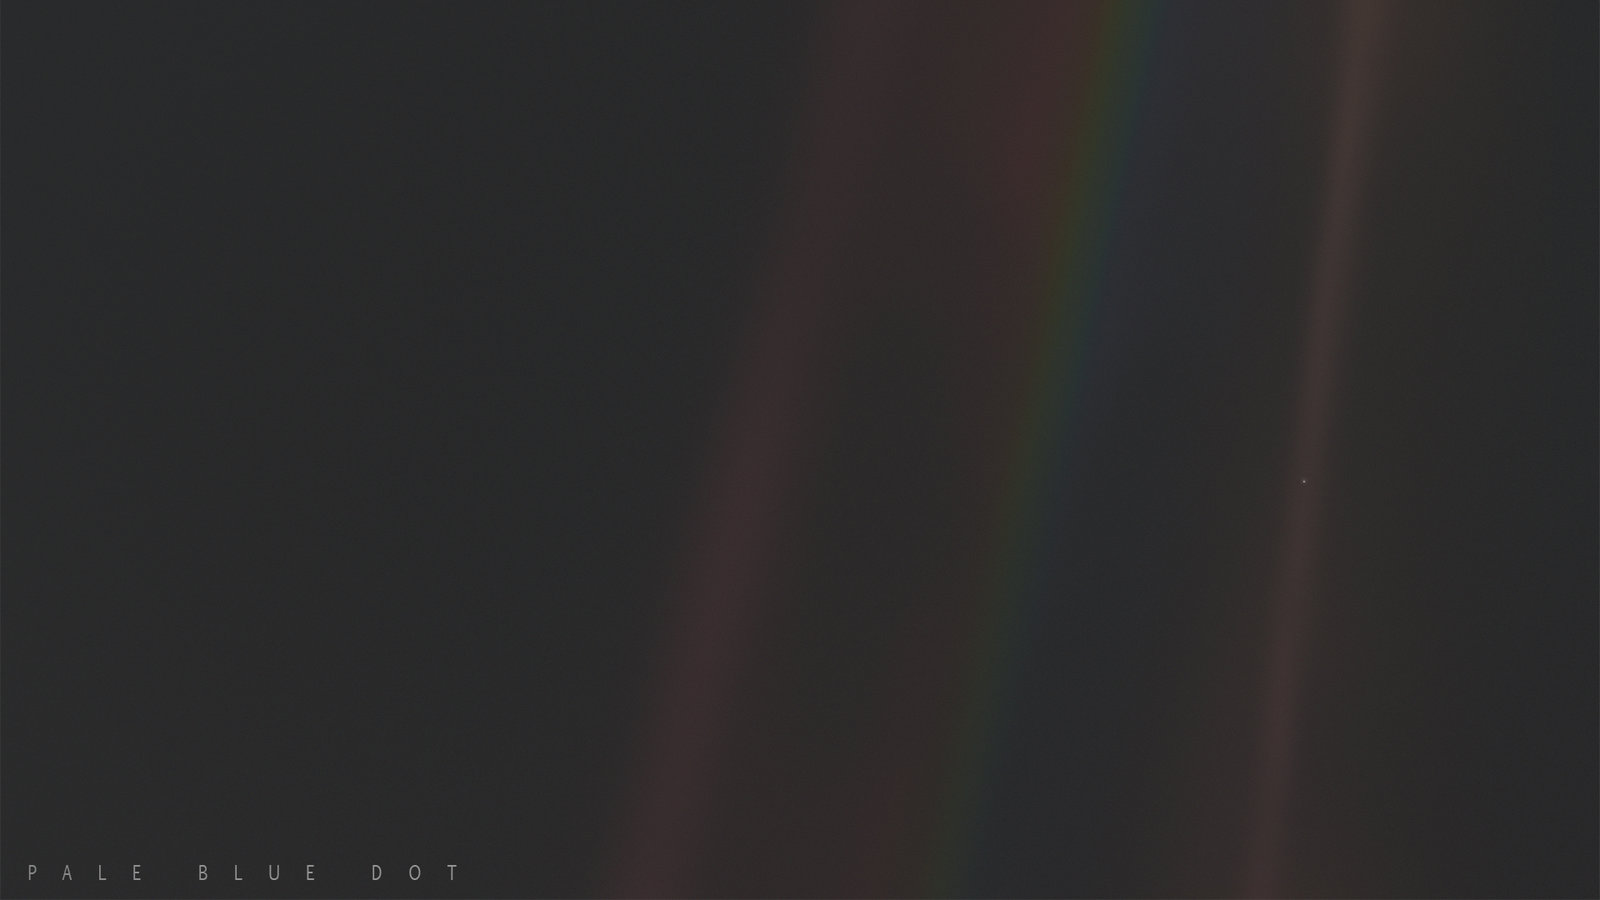 Pale Blue Dot - Carl Sagan